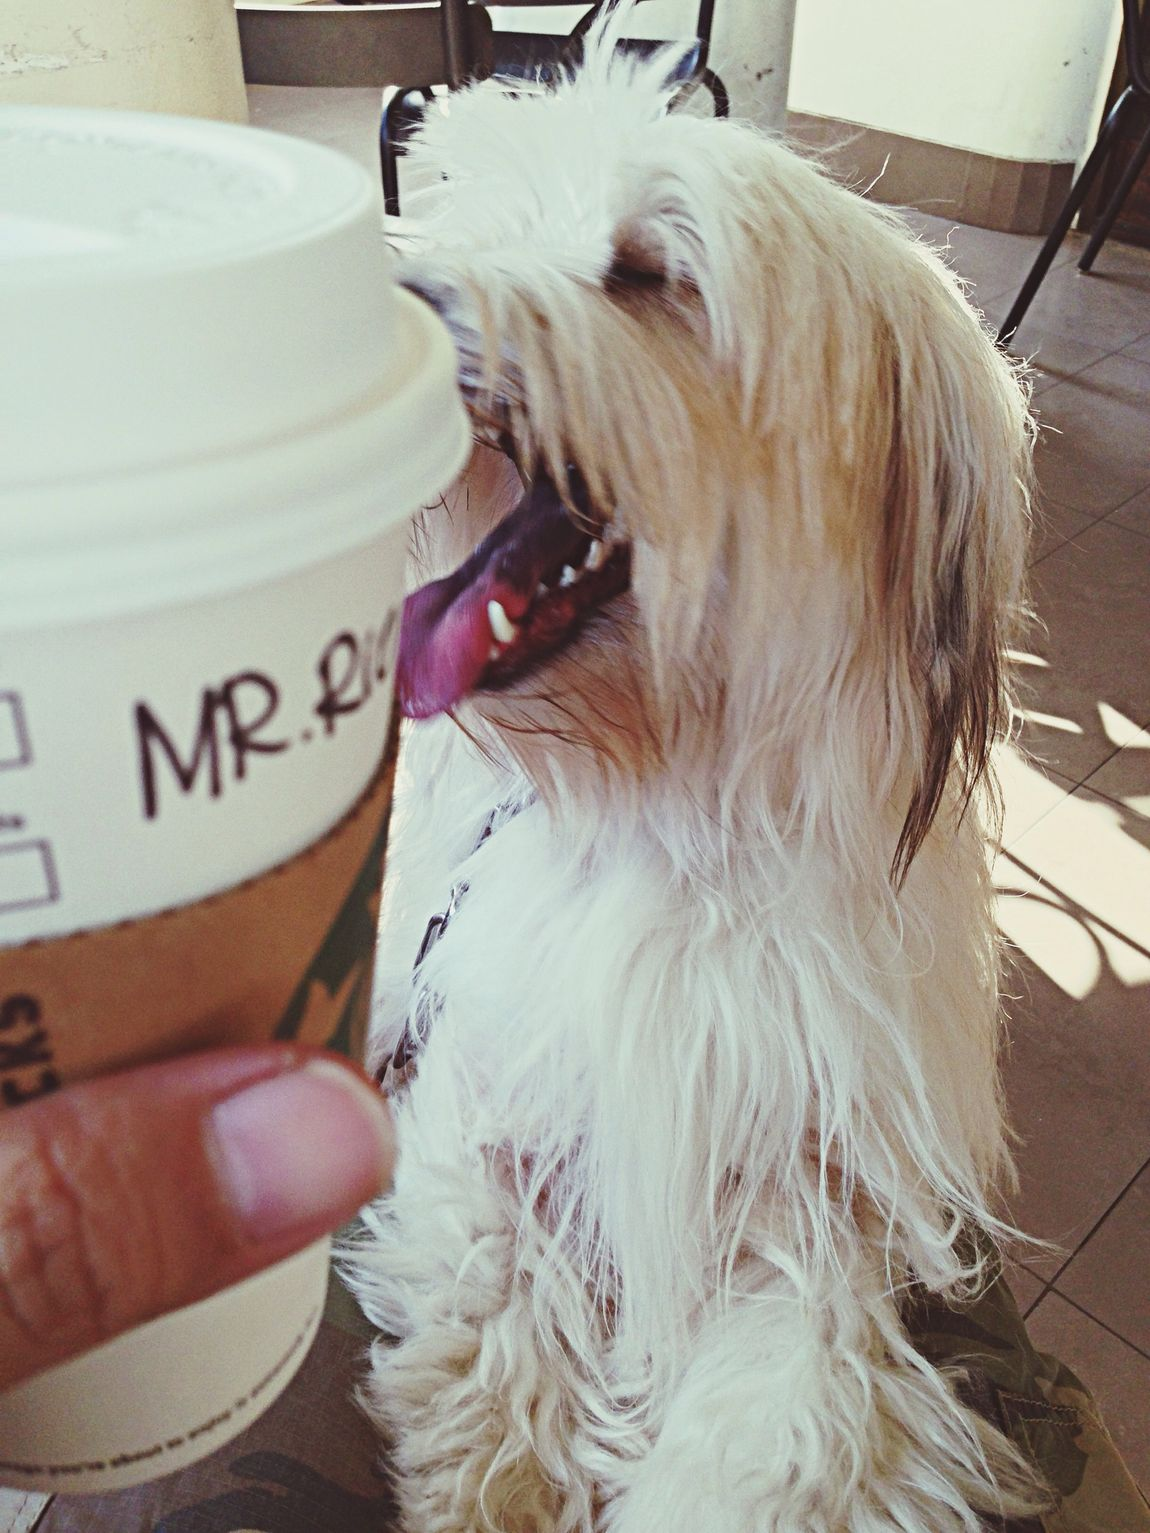 Cafe Latte Drinking A Latte Enjoying Life My Dogs Are Cooler Than Your Kids Just Around The Corner